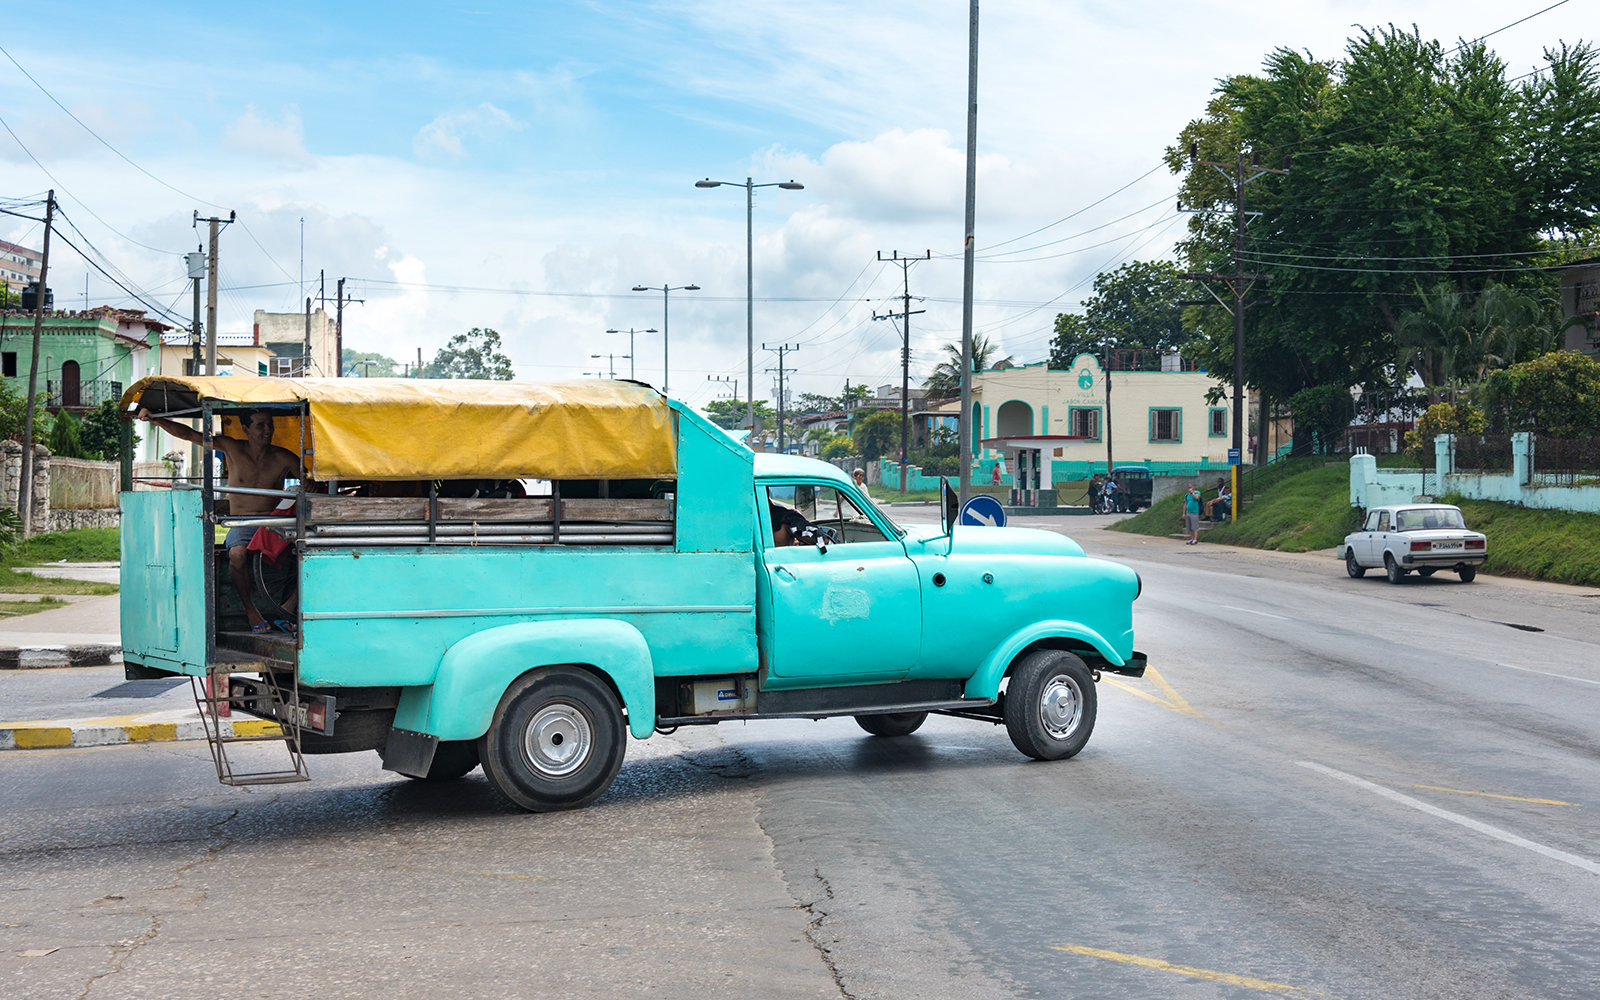 HAVANA, CUBA - 2015/09/11: Cuba news: real life use of obsolete vehicles in 2015. Cuba is known for the beautiful classic American cars still running in the Caribbean Island. However, here you find the real use of the real cars running in Cuba on a daily